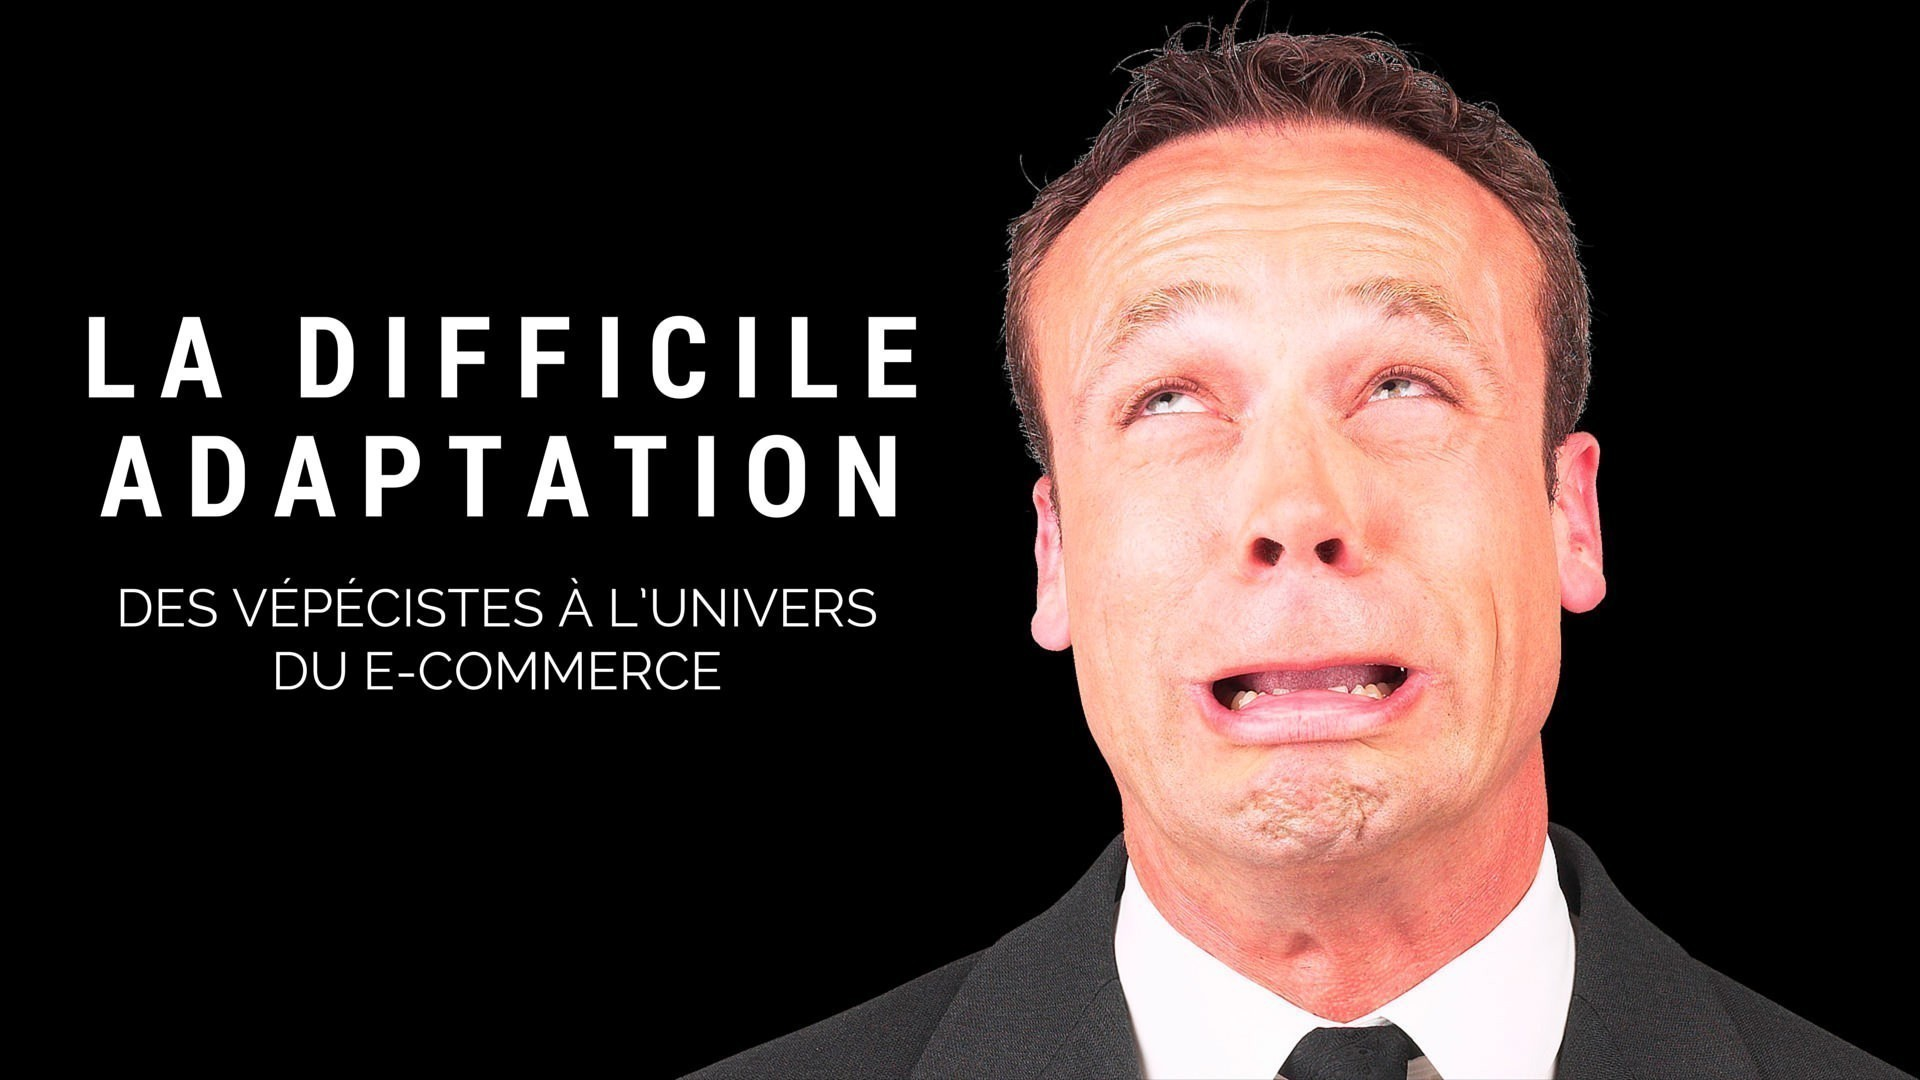 La difficile adaptation des vépécistes à l'univers du e-commerce…